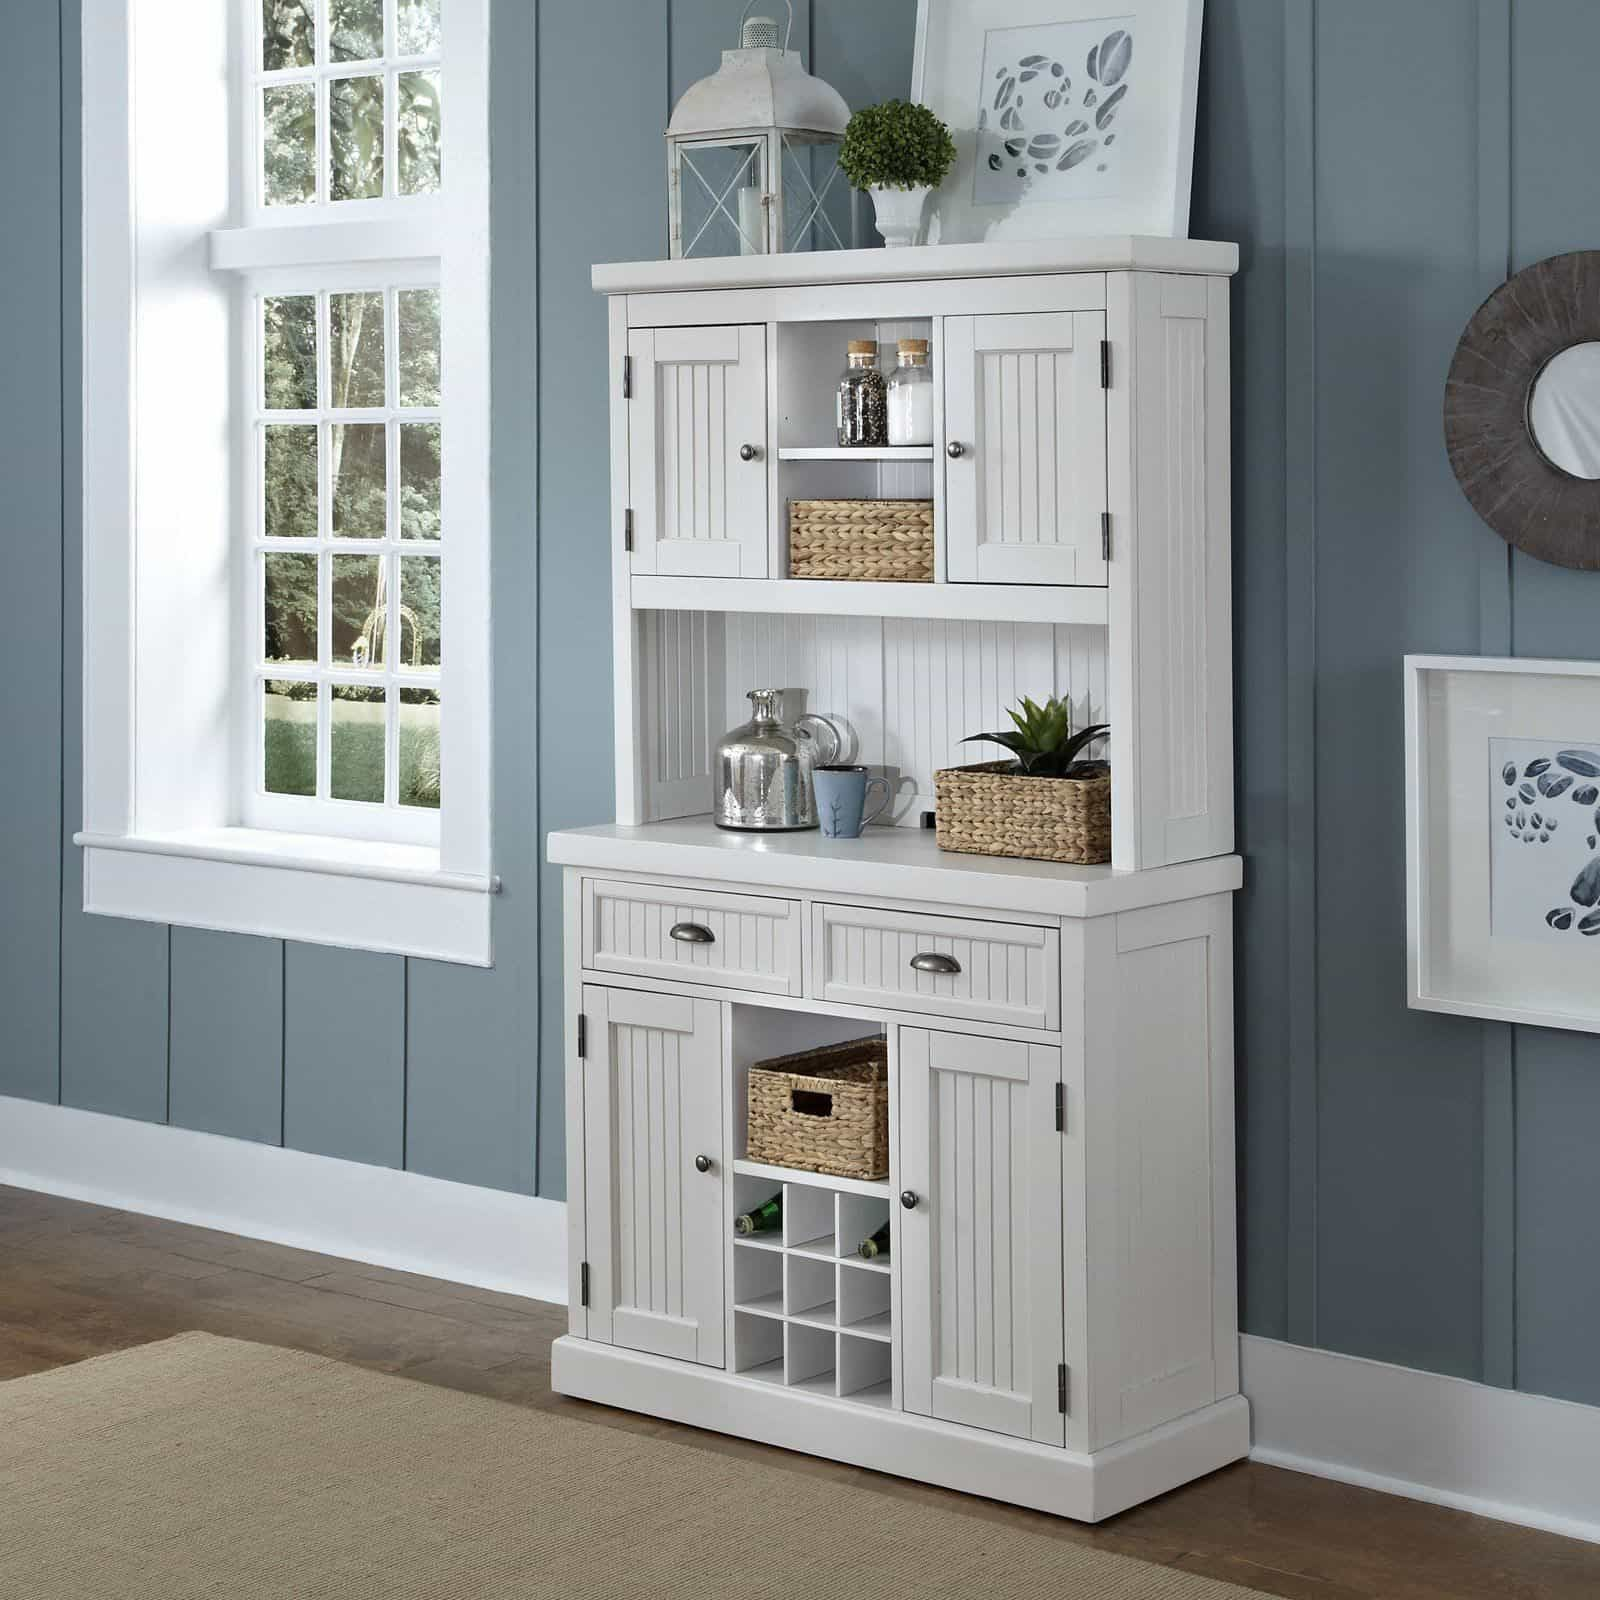 hutch kitchen furniture pin on kitchen hutch 4814